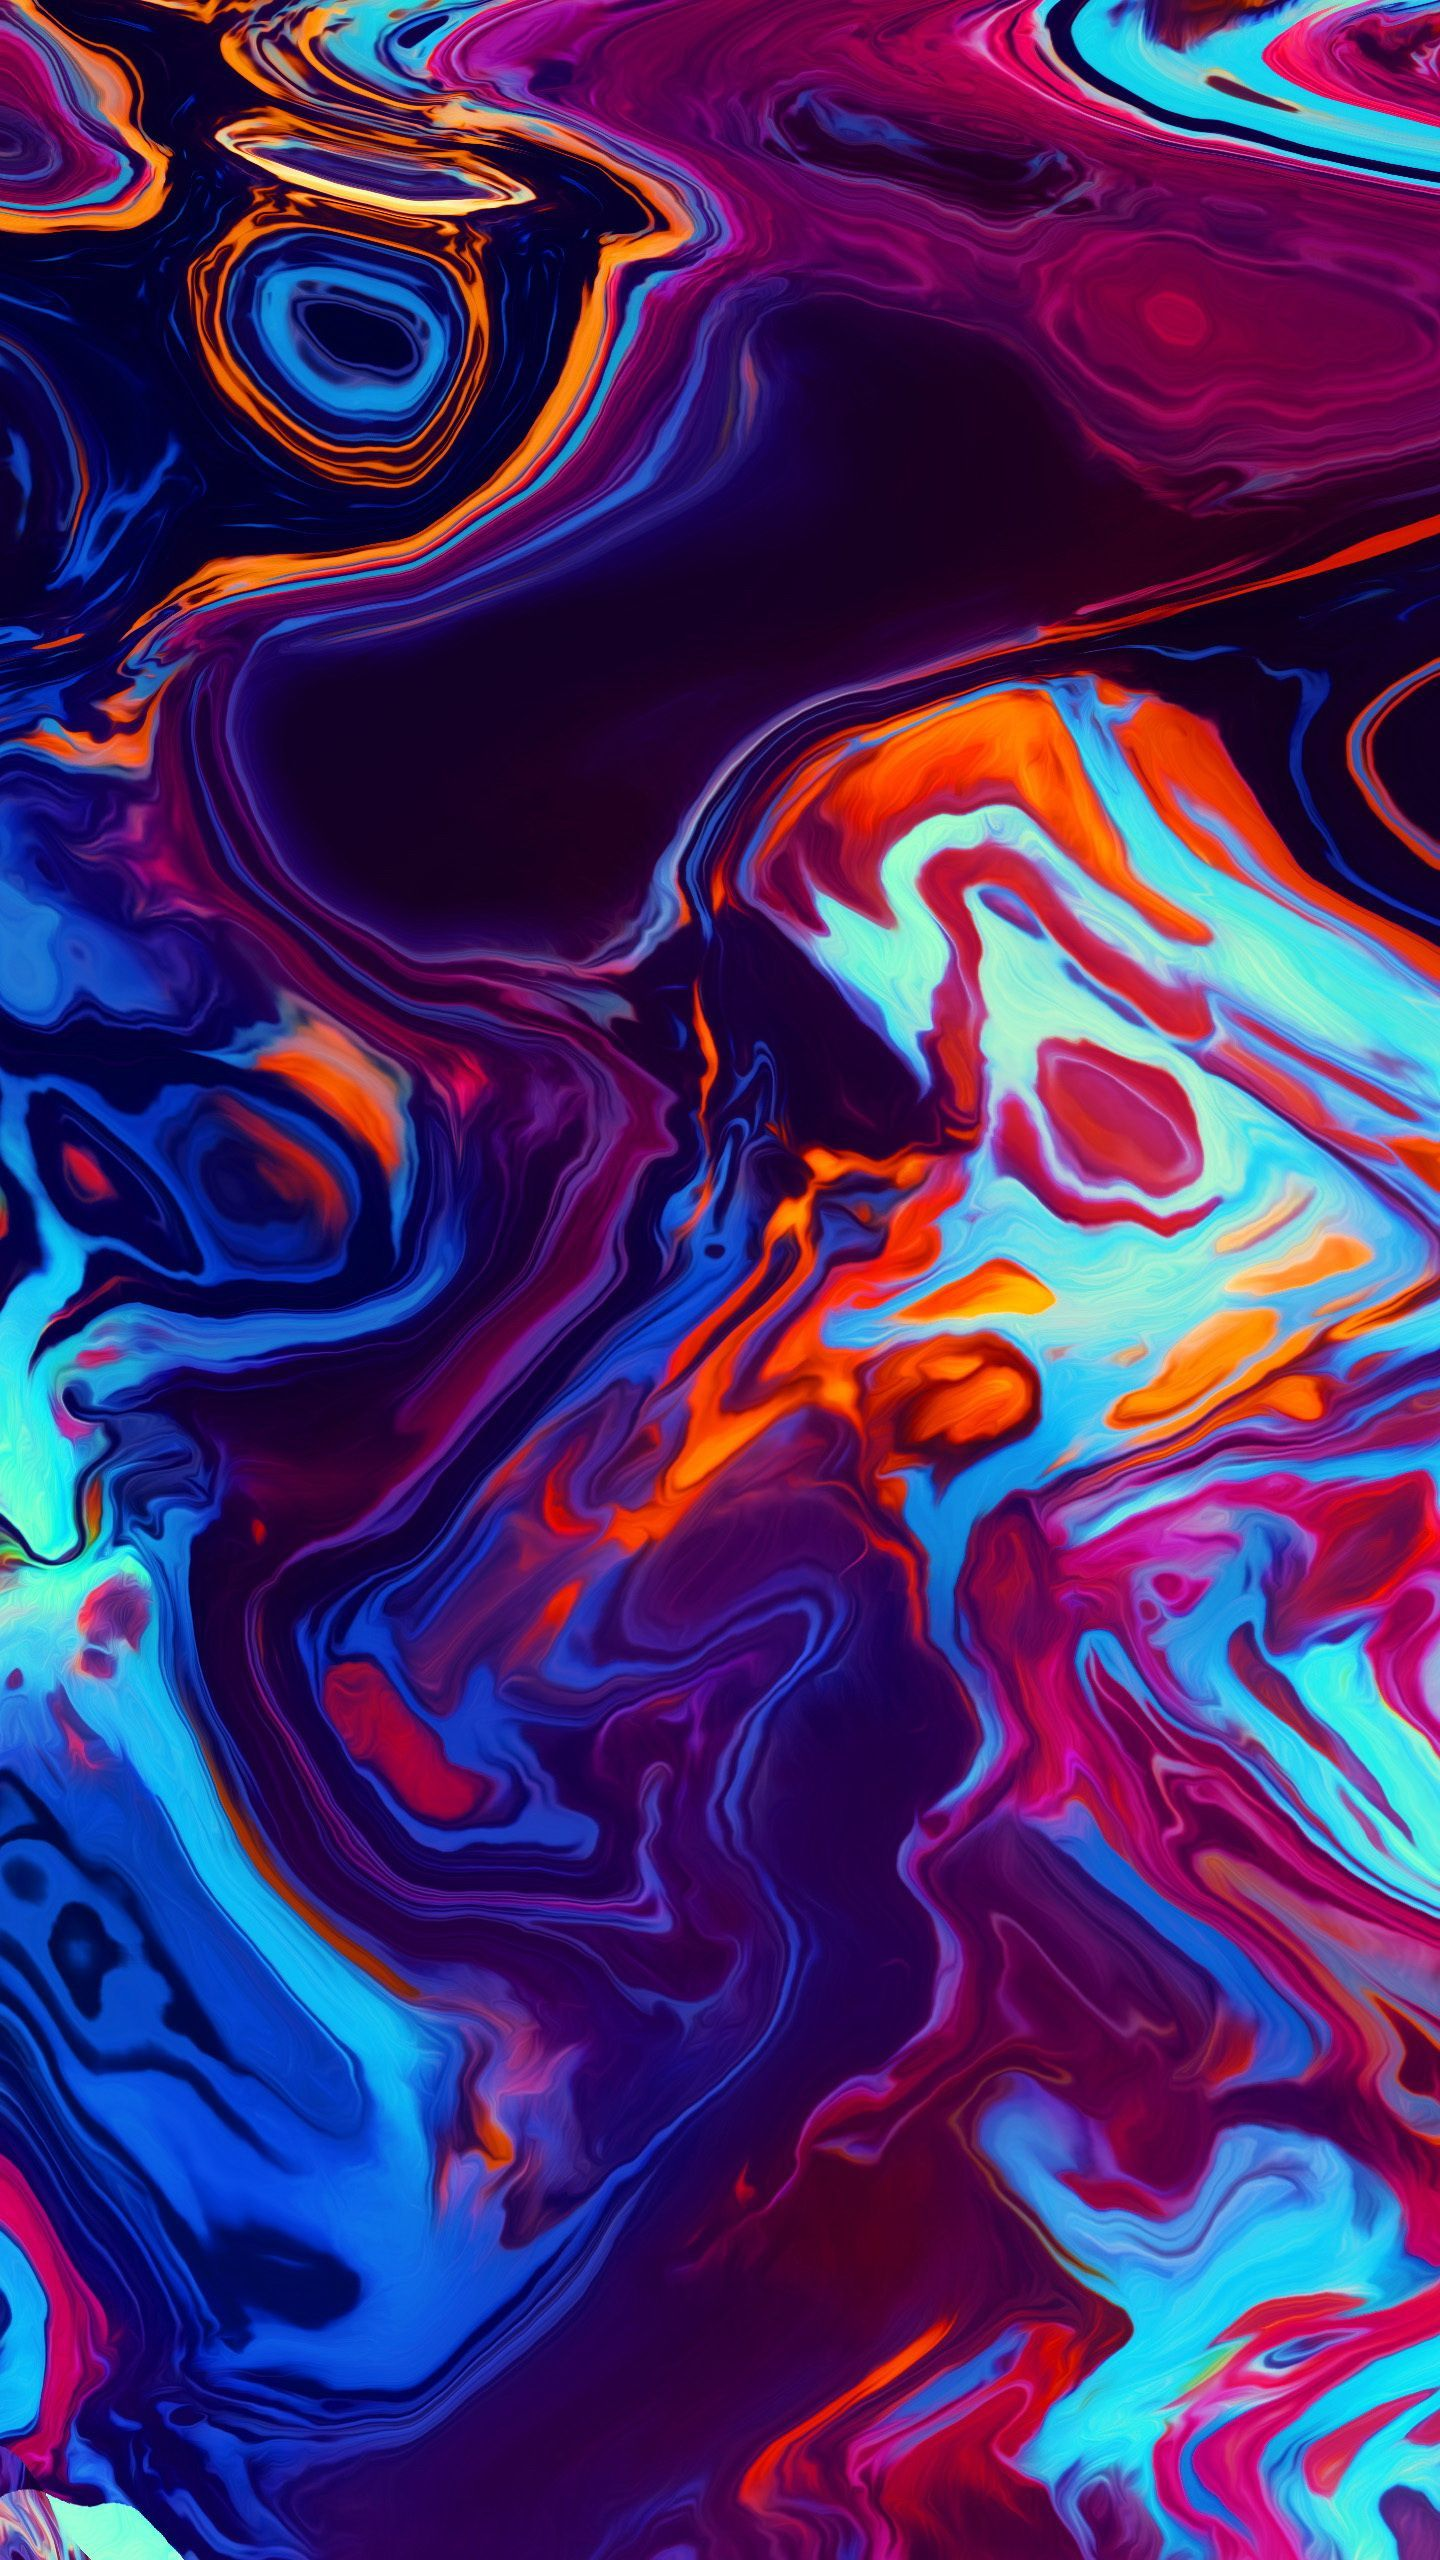 Iphone 11 Pro Wallpaper In 2020 Art Wallpaper Iphone Abstract Wallpaper Trippy Wallpaper